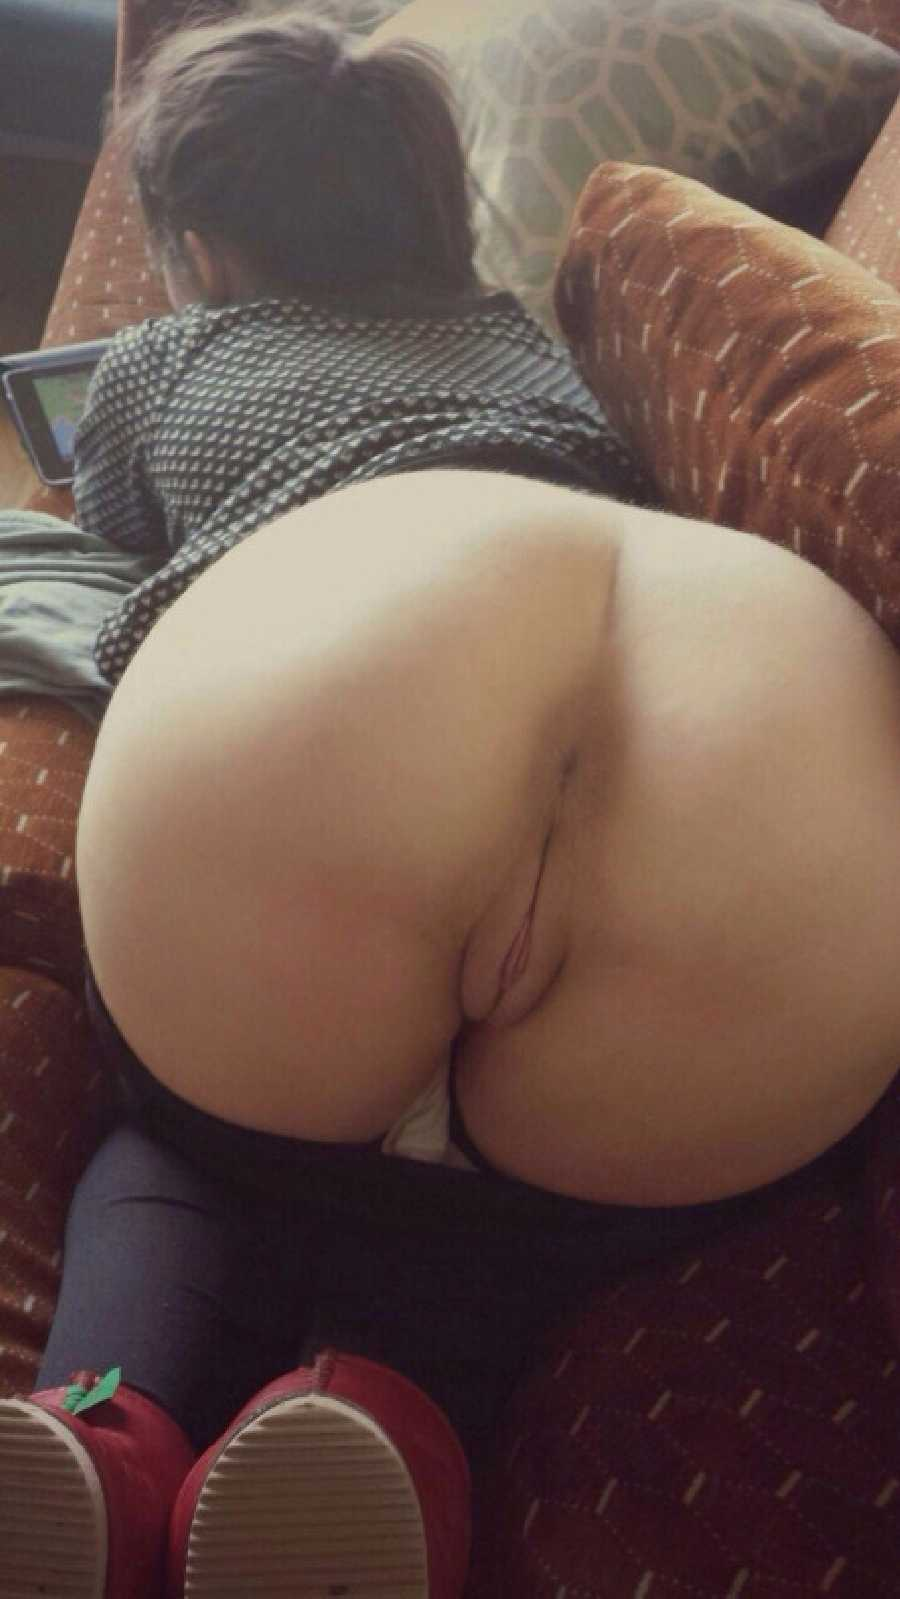 Naked ass and pussy pics